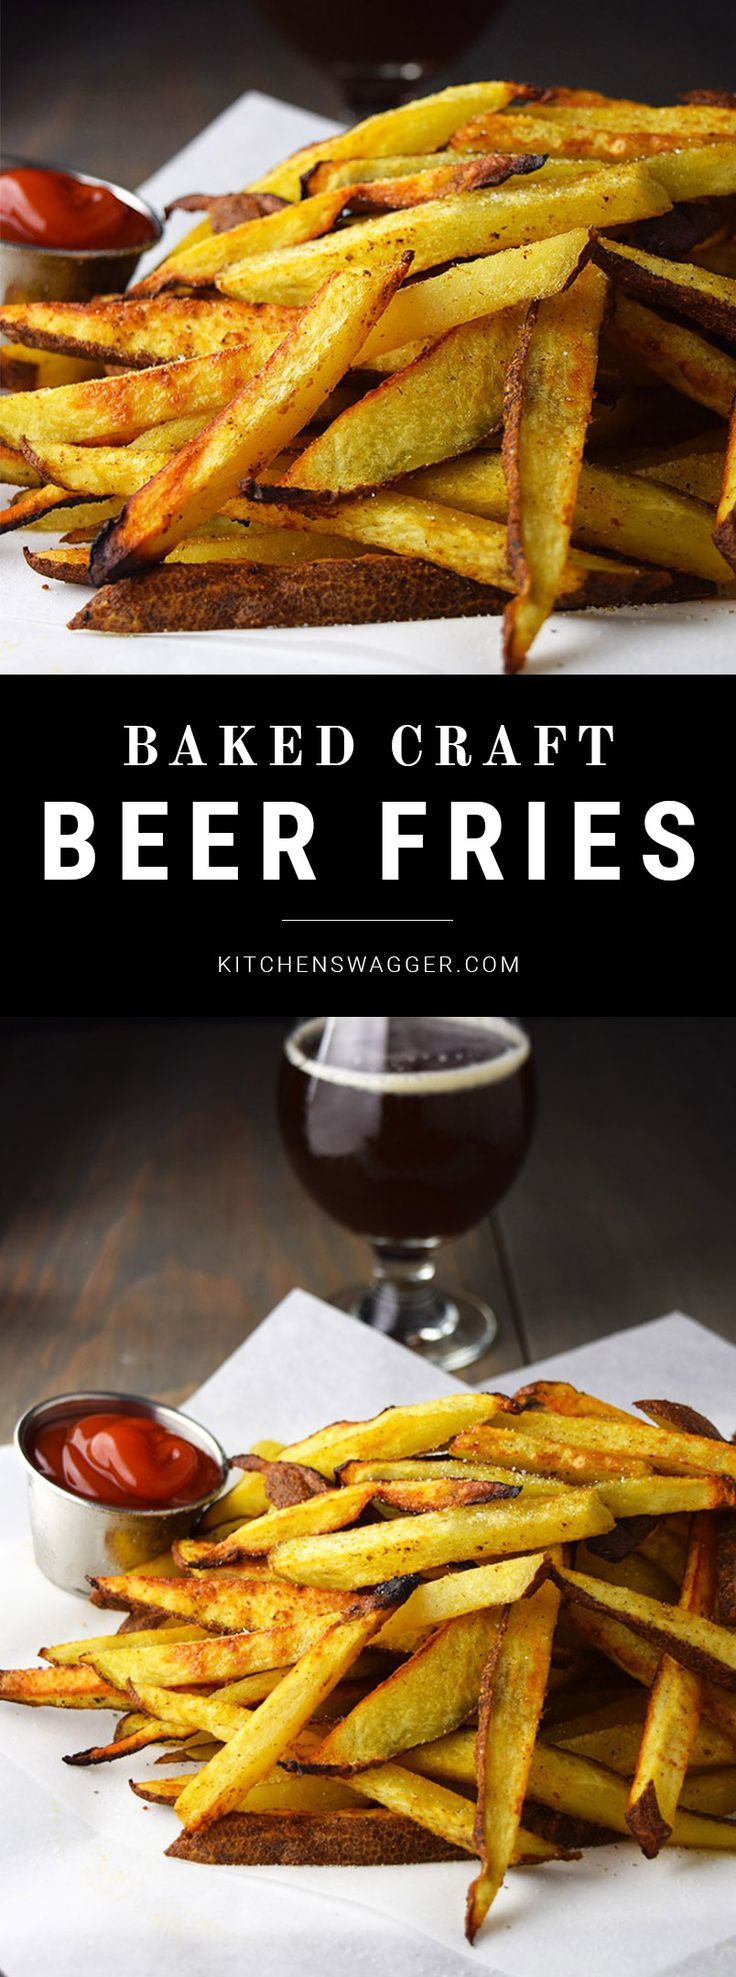 2648 best craft beer images on pinterest craft beer kitchens and beer baked craft beer fries forumfinder Images